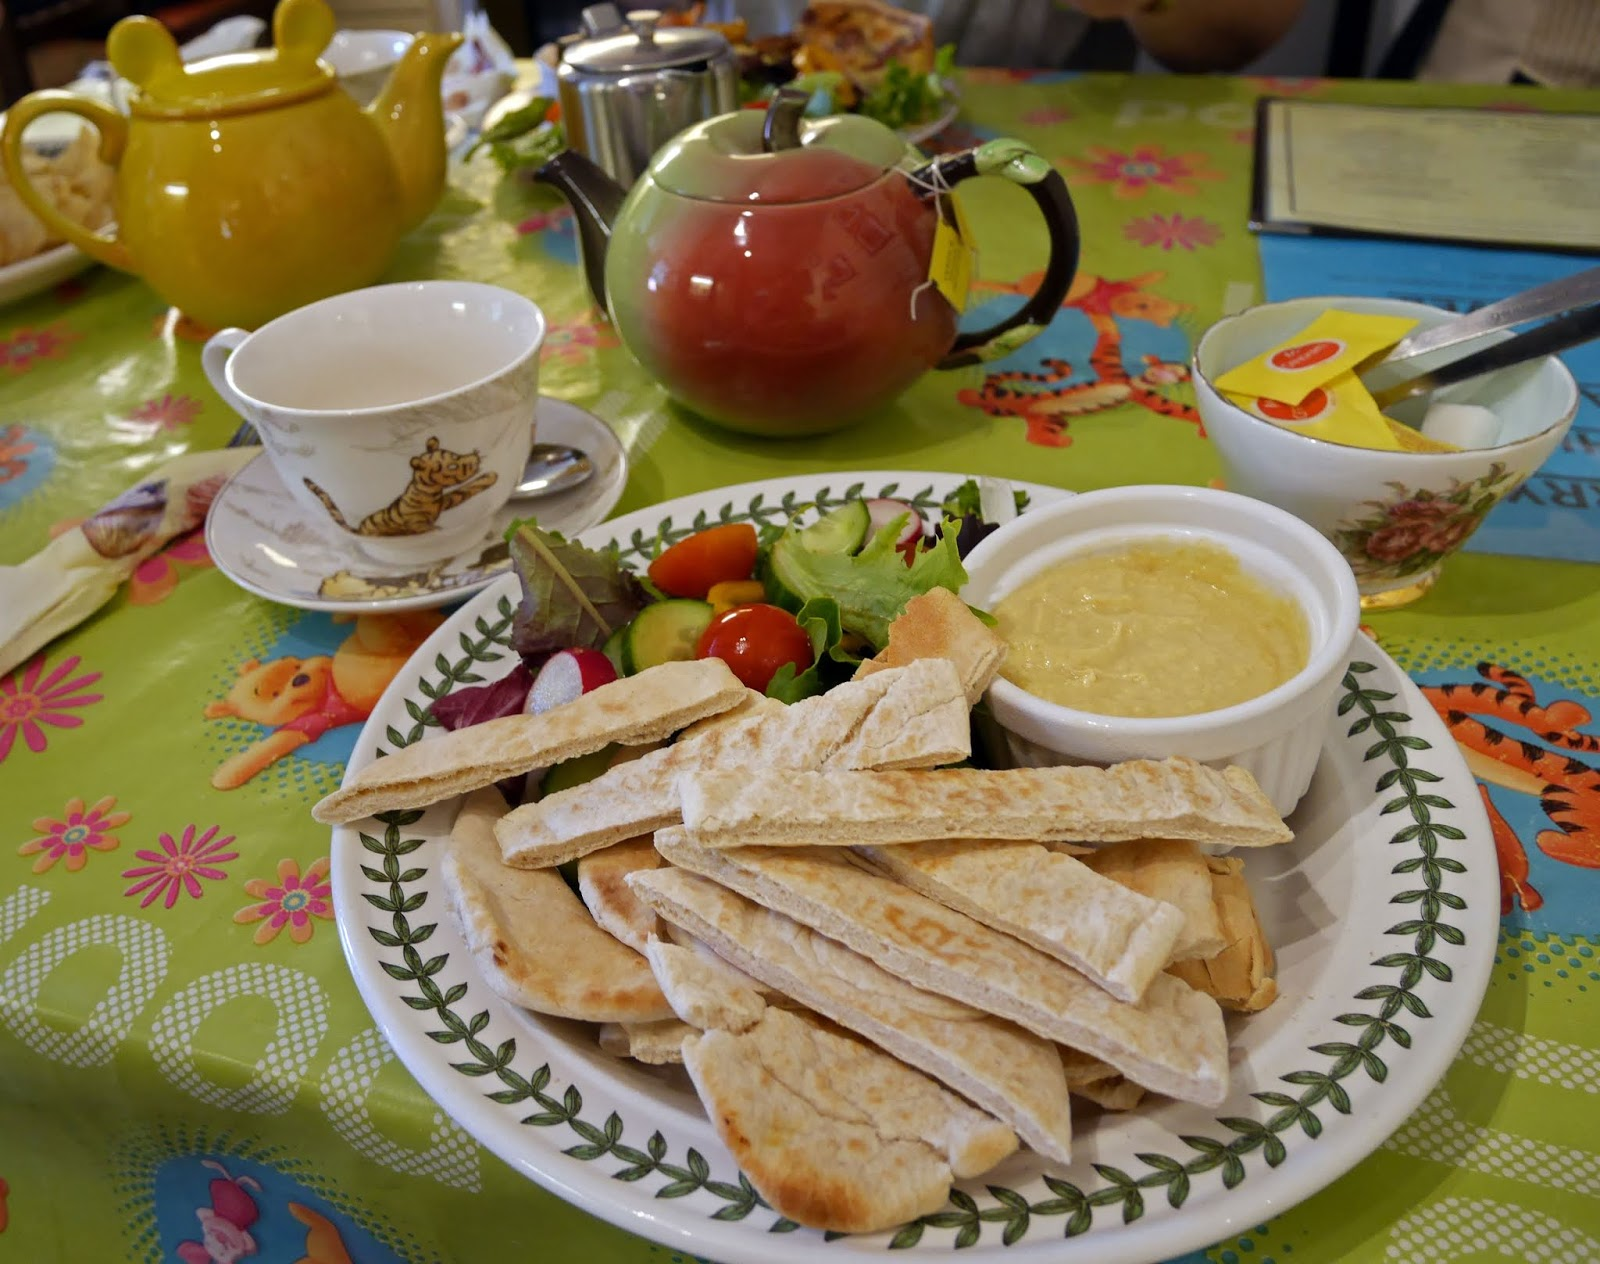 Hummus and pitta bread for lunch at Piglet's Tearoom, Ashdown Forest